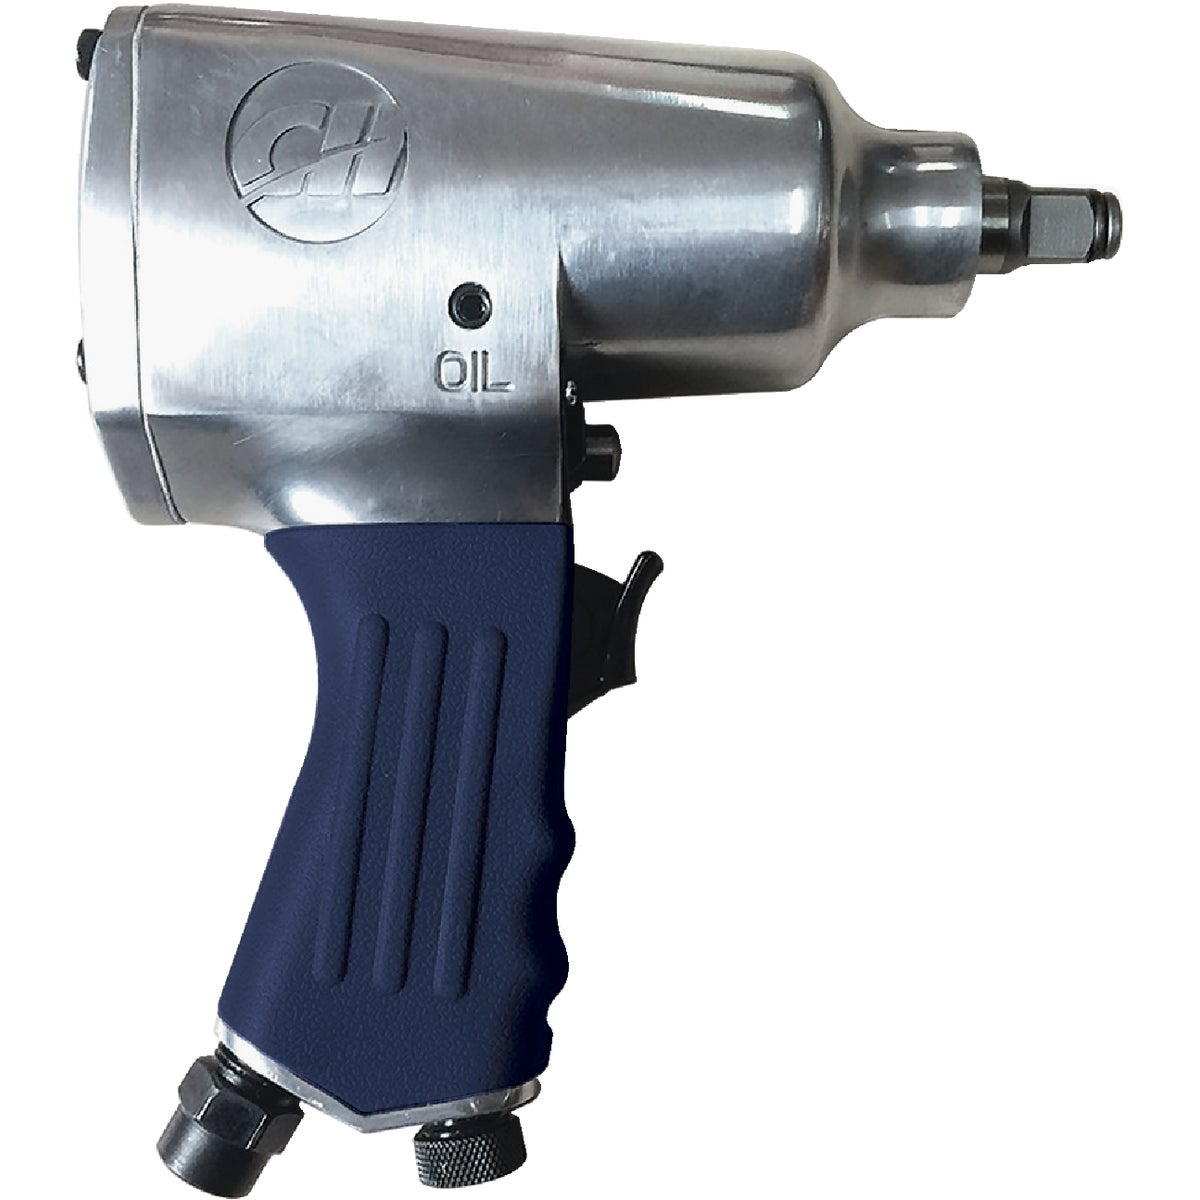 "1/2"" IMPACT WRENCH - TL050201AV by Campbell Hausfeld Co"